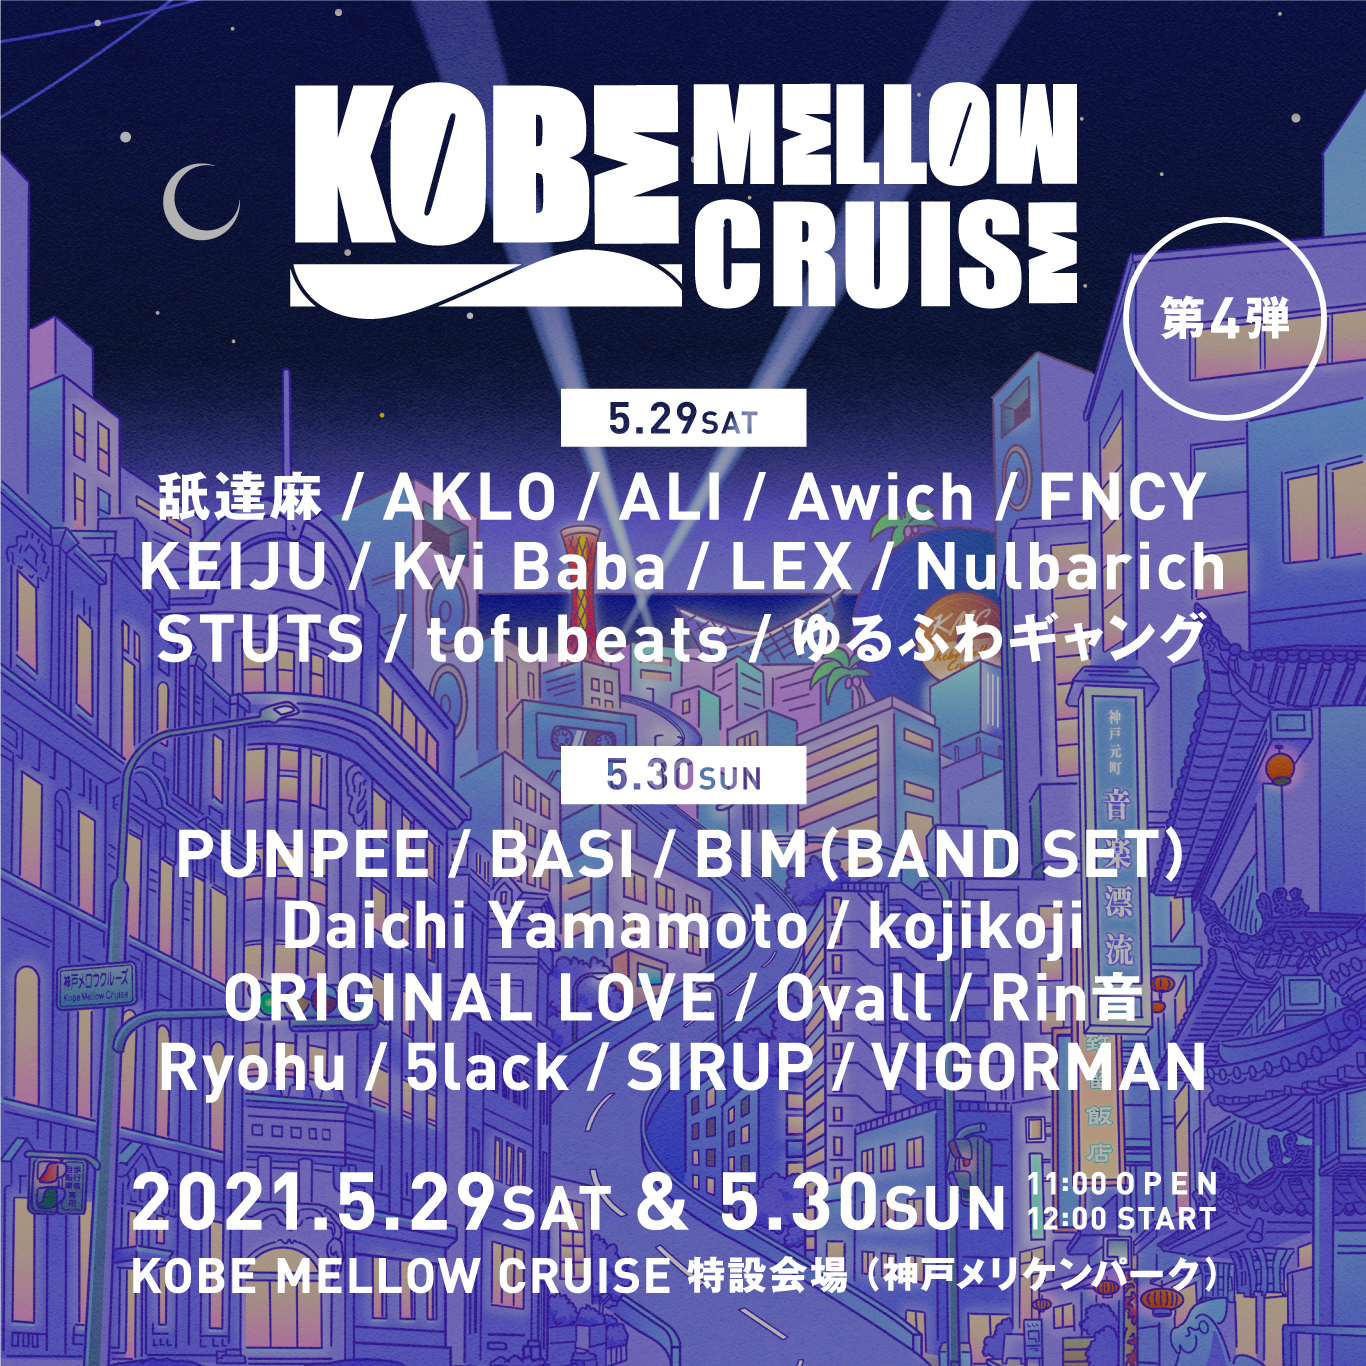 KOBE MELLOW CRUISE 2021